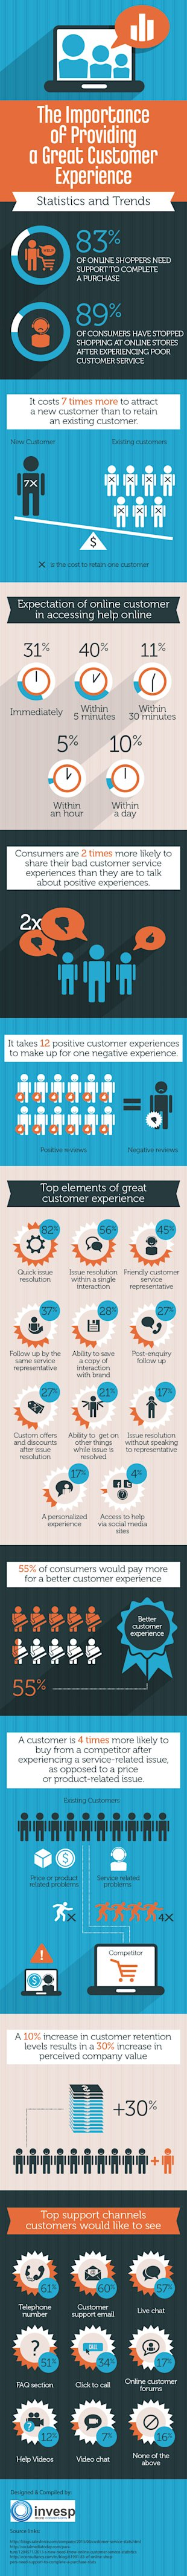 The Importance of Great Customer Experience image customer experience4